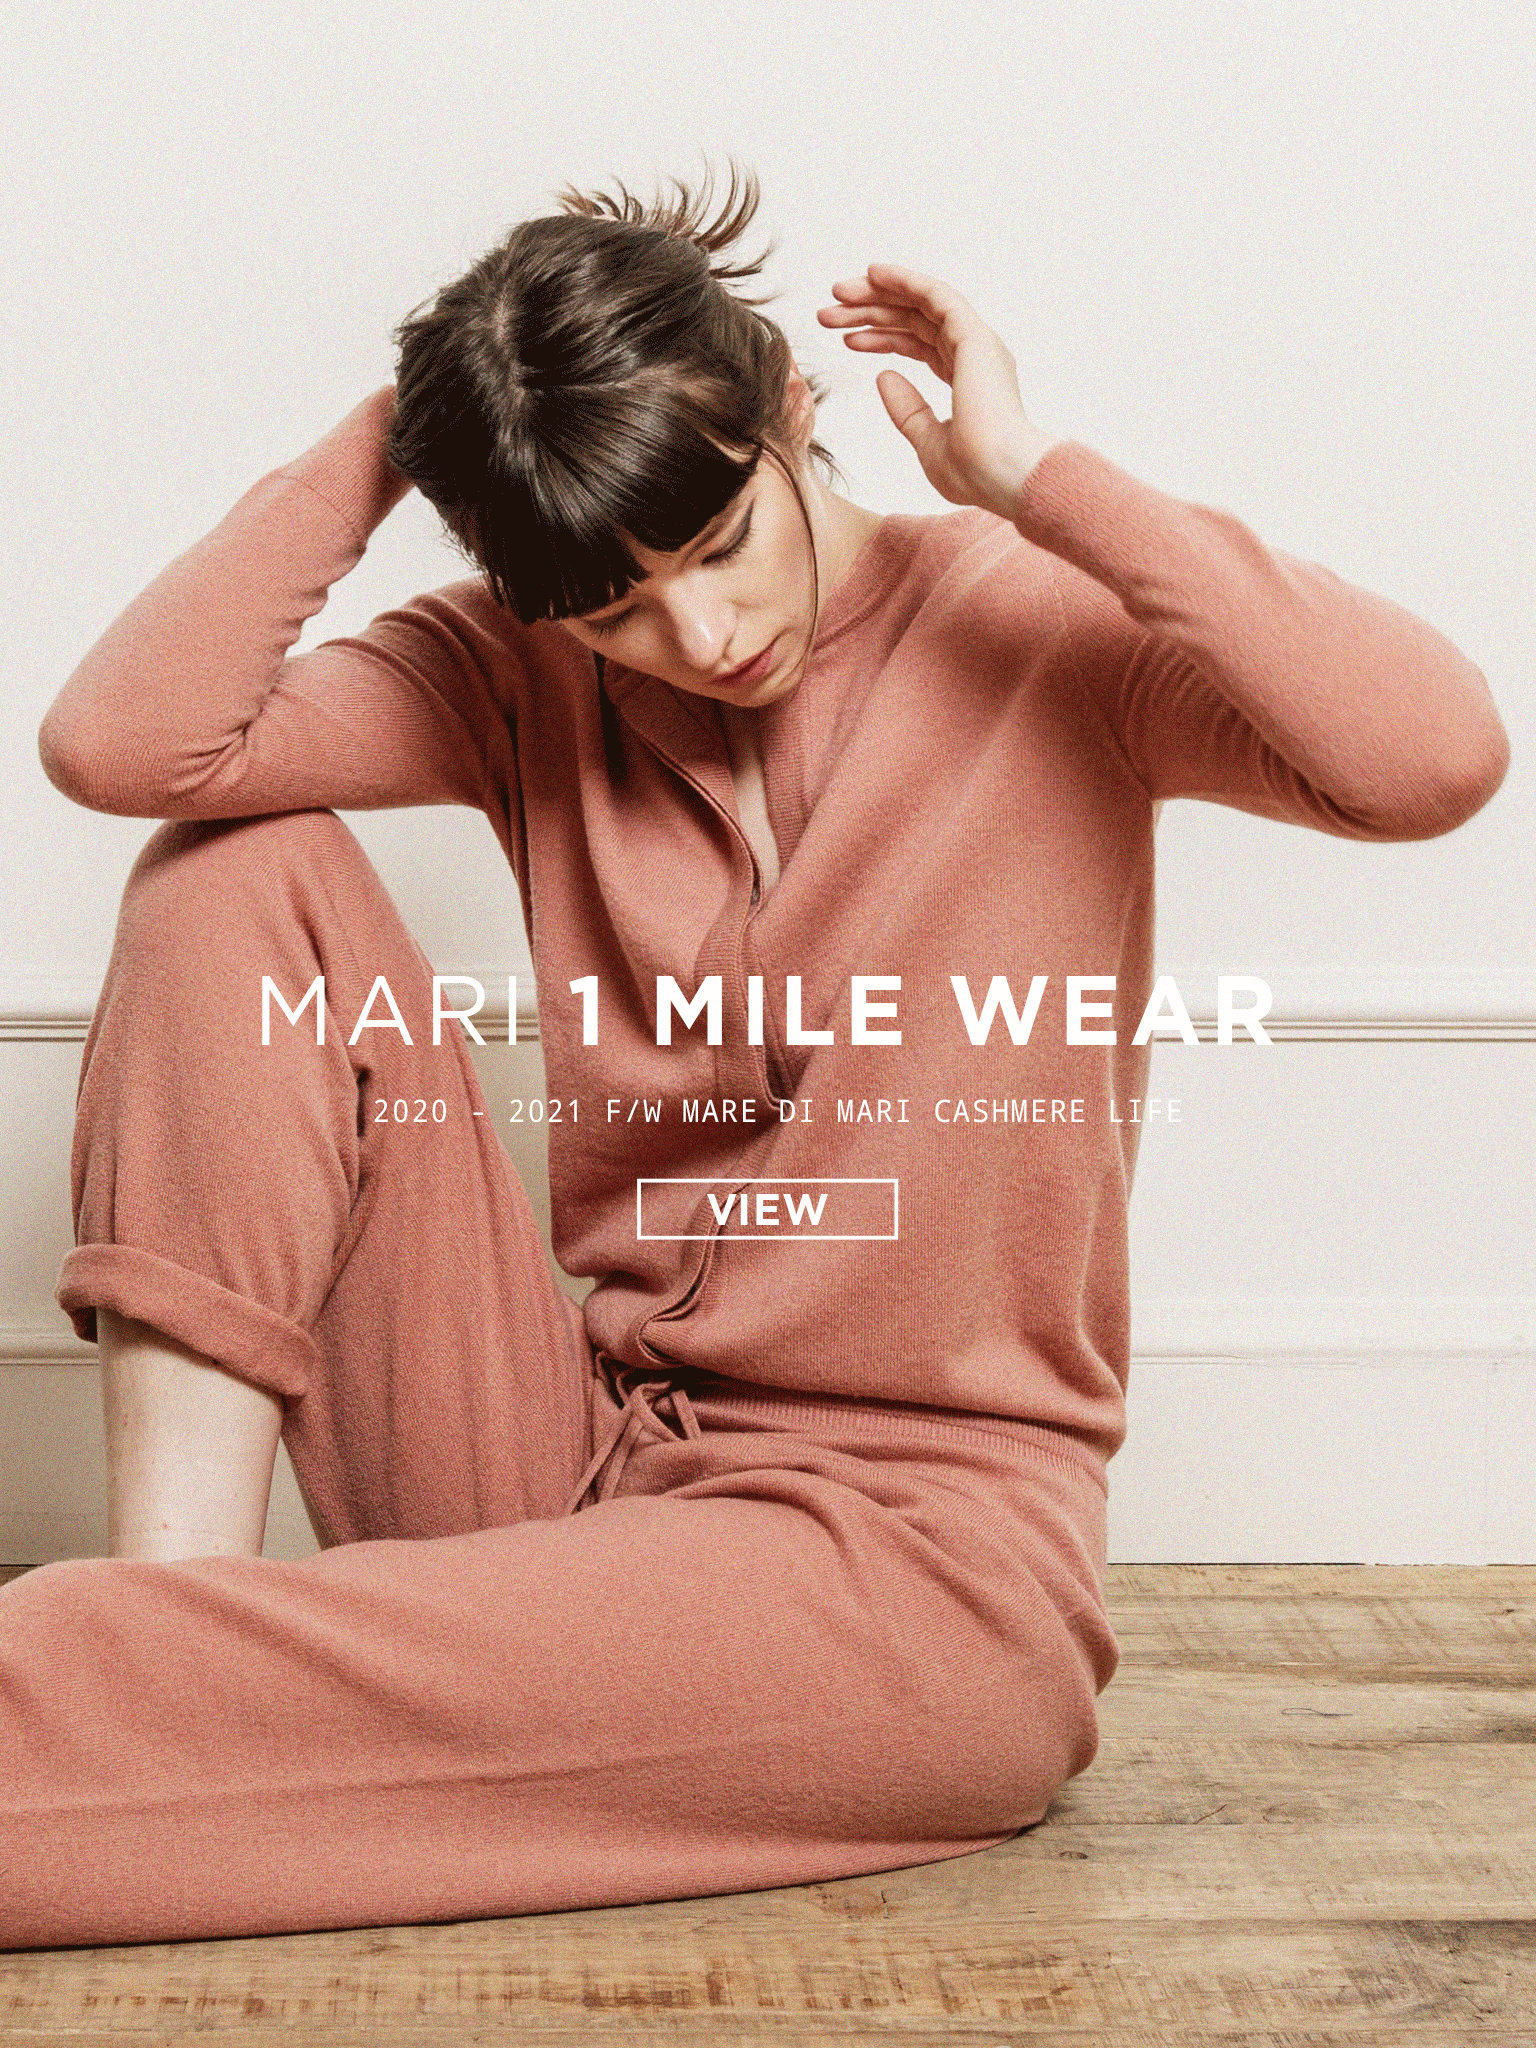 2020 – 21 F/W  'Things we can do'  MARI 1 Mile Wear